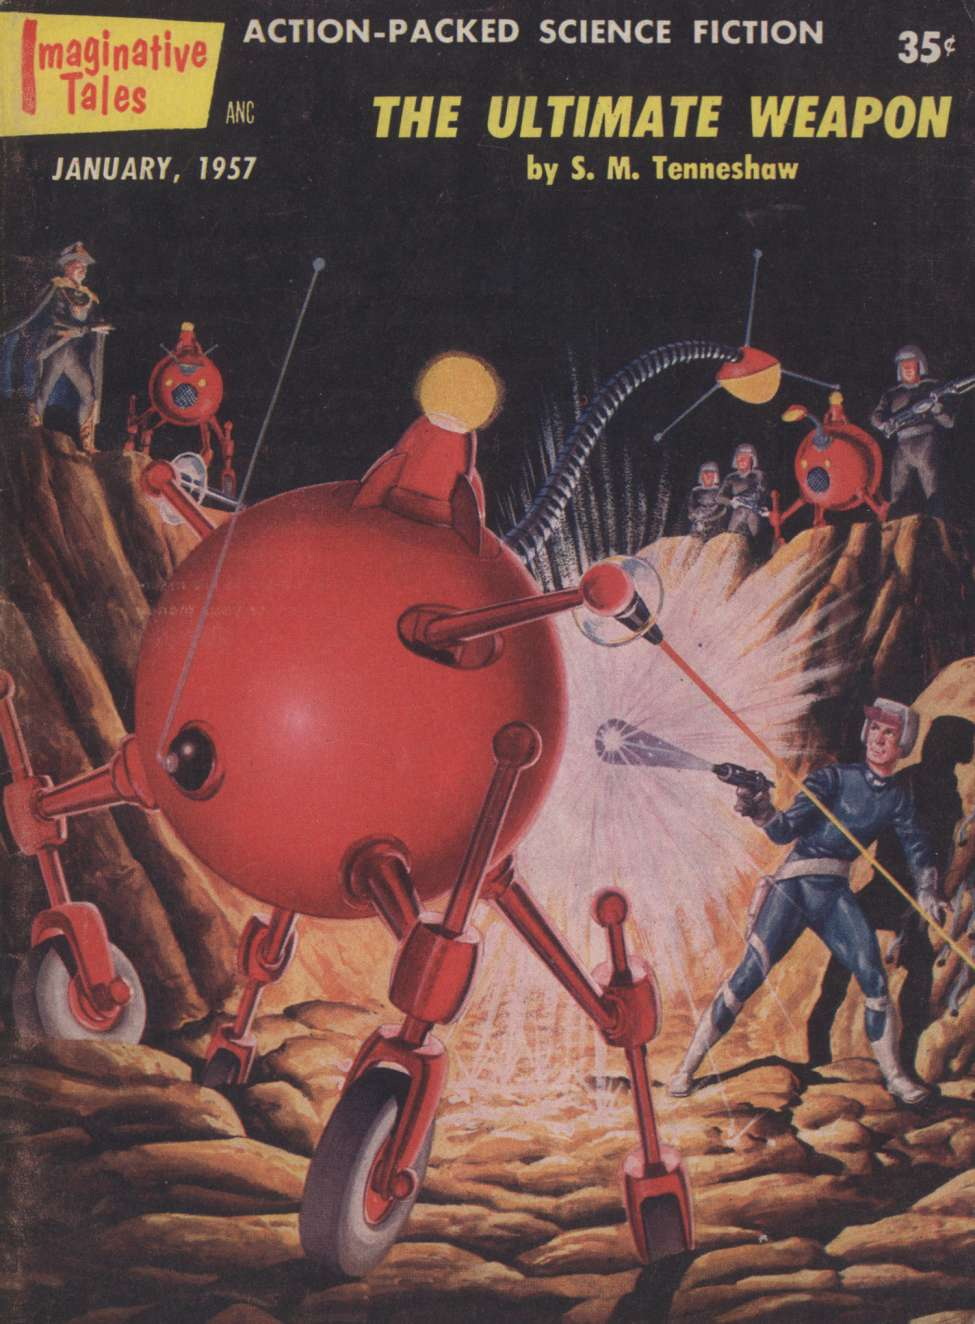 Comic Book Cover For Imaginative Tales v04 01 - The Ultimate Weapon - S. M. Tenneshaw